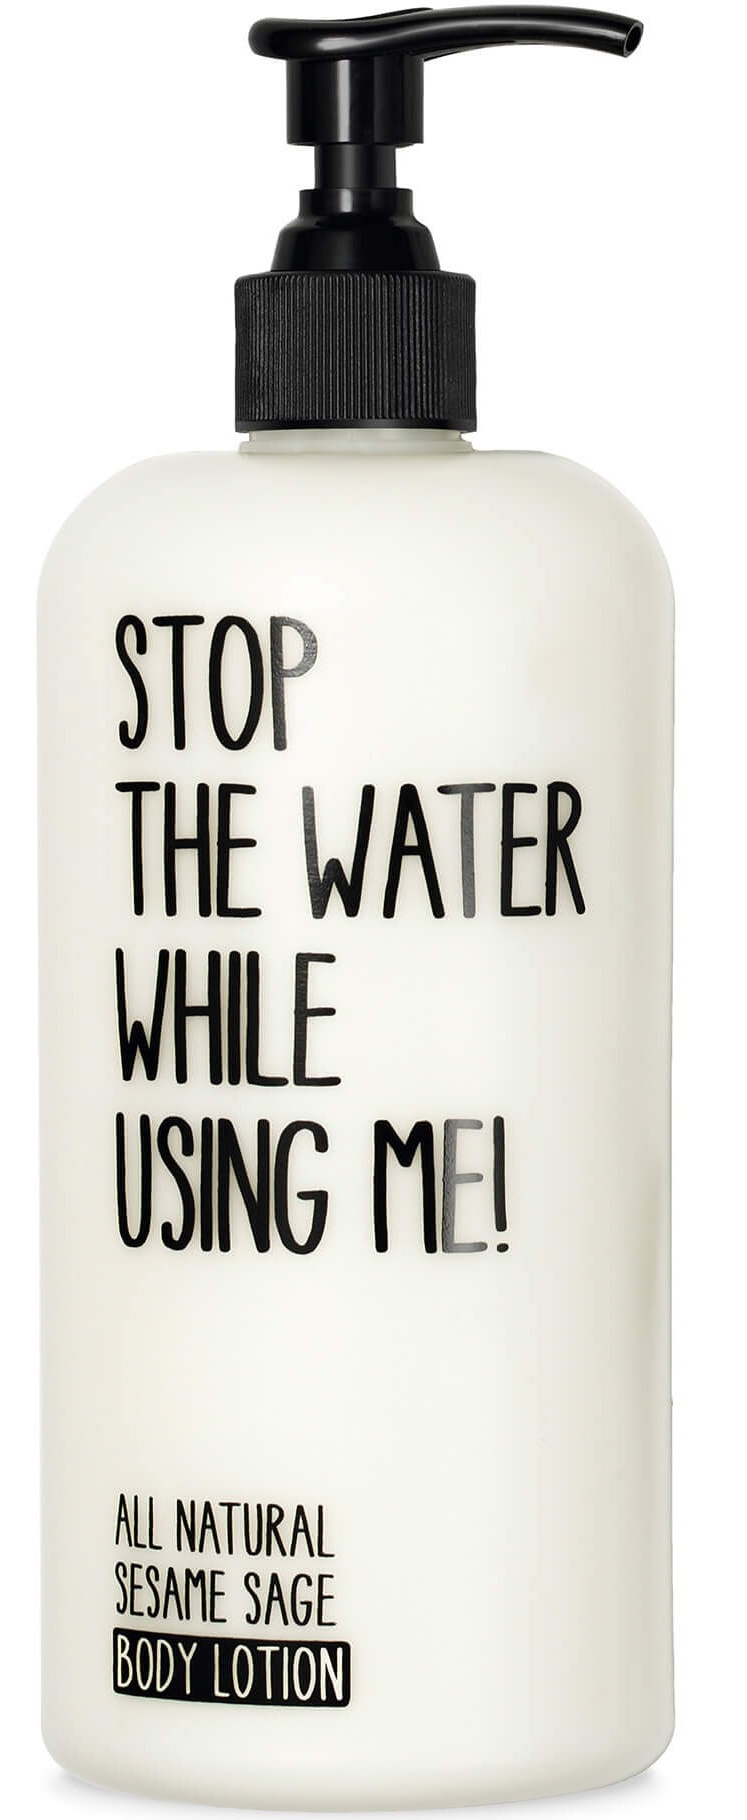 STOP THE WATER WHILE USING ME! Bodylotion Sesame Sage